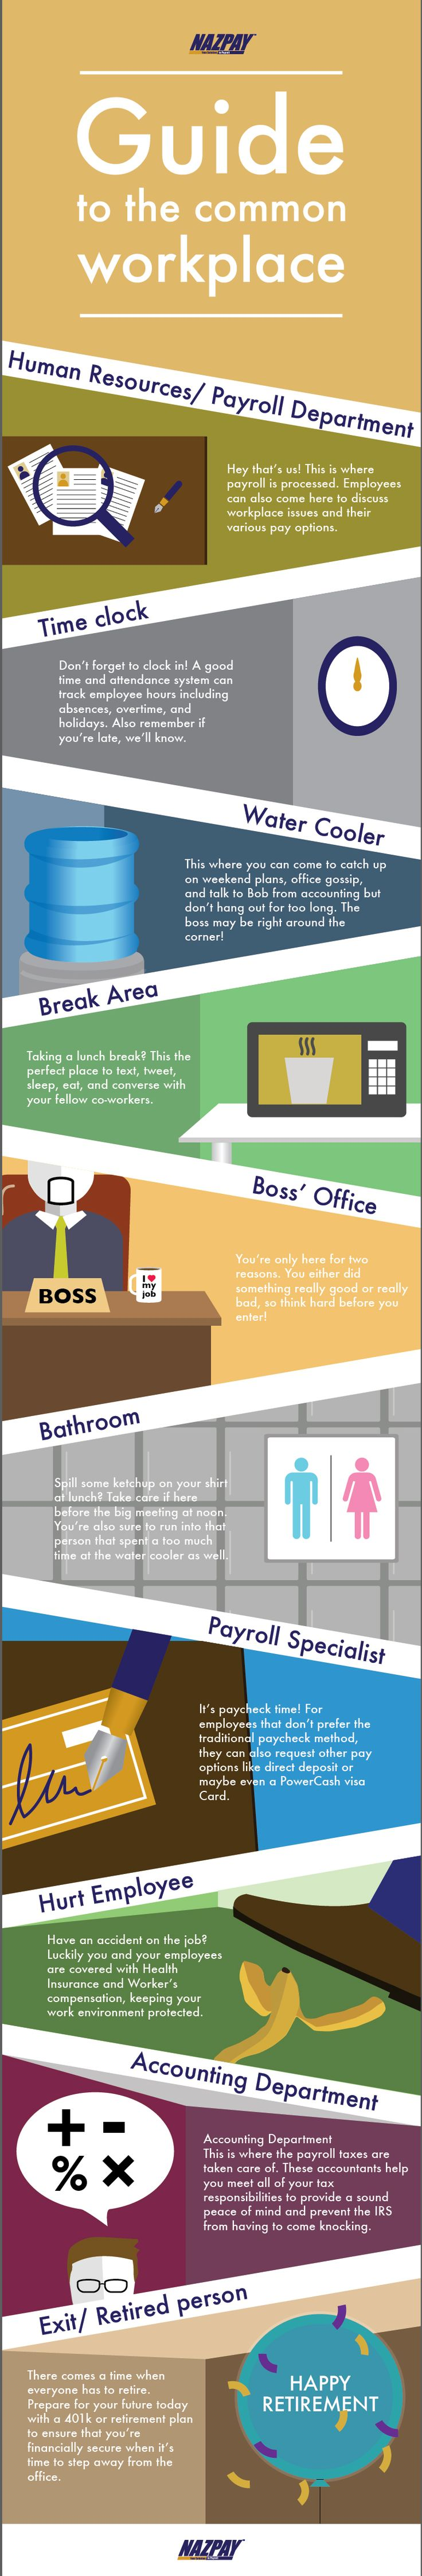 Guide to the common workplace